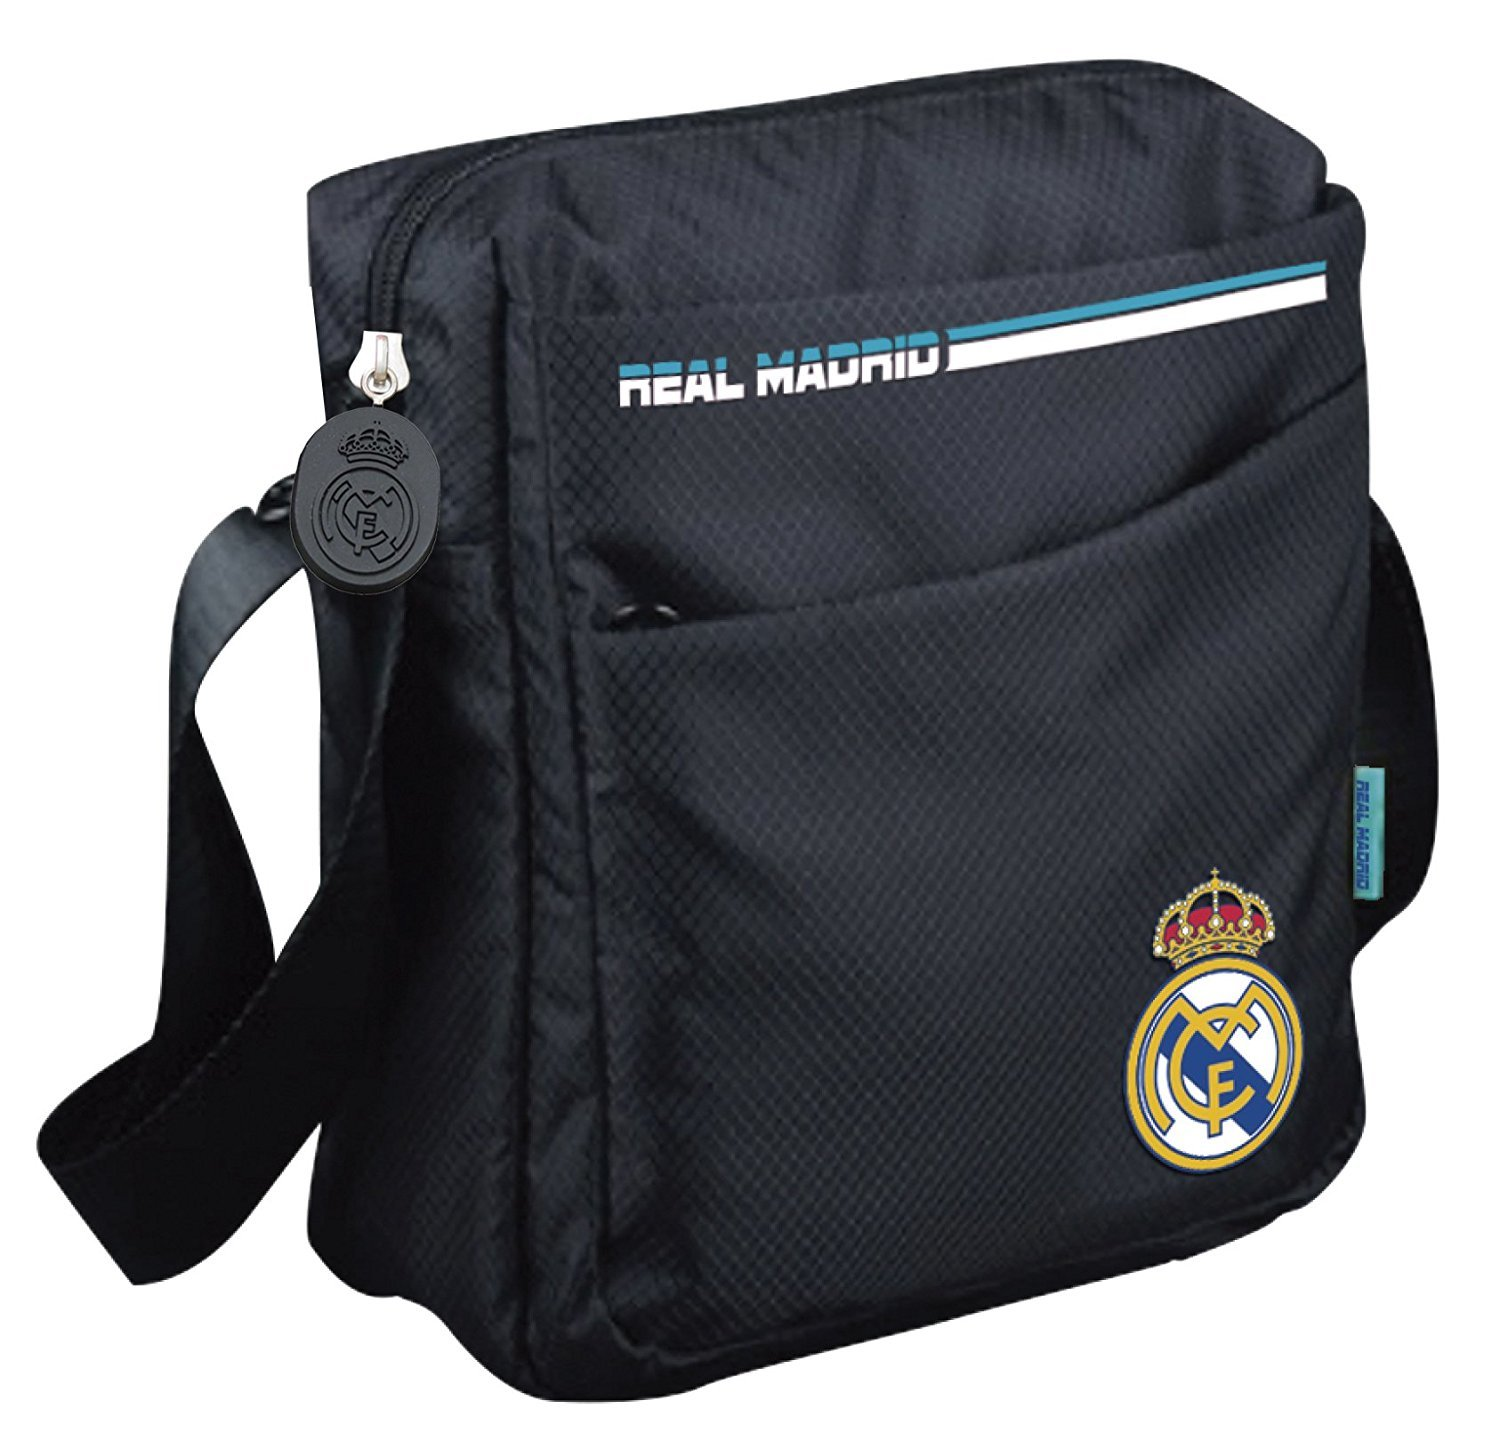 Real Madrid Schultertasche